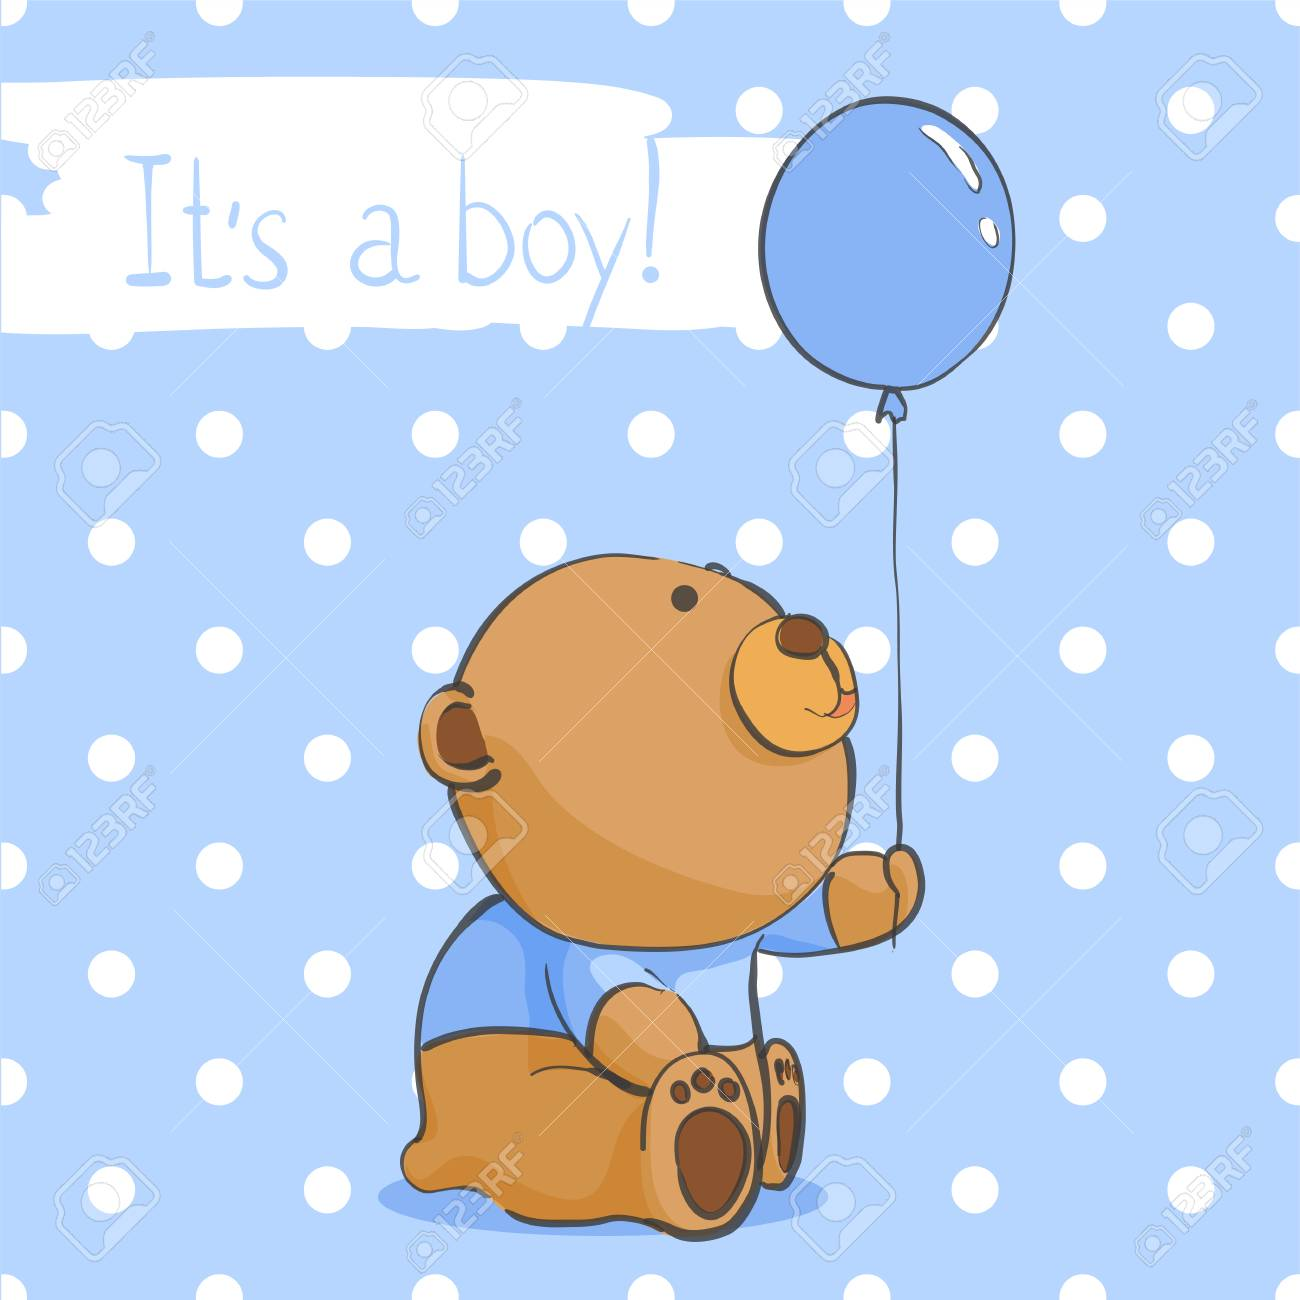 Cute Bear On A Blue Background In Peas Royalty Free Cliparts